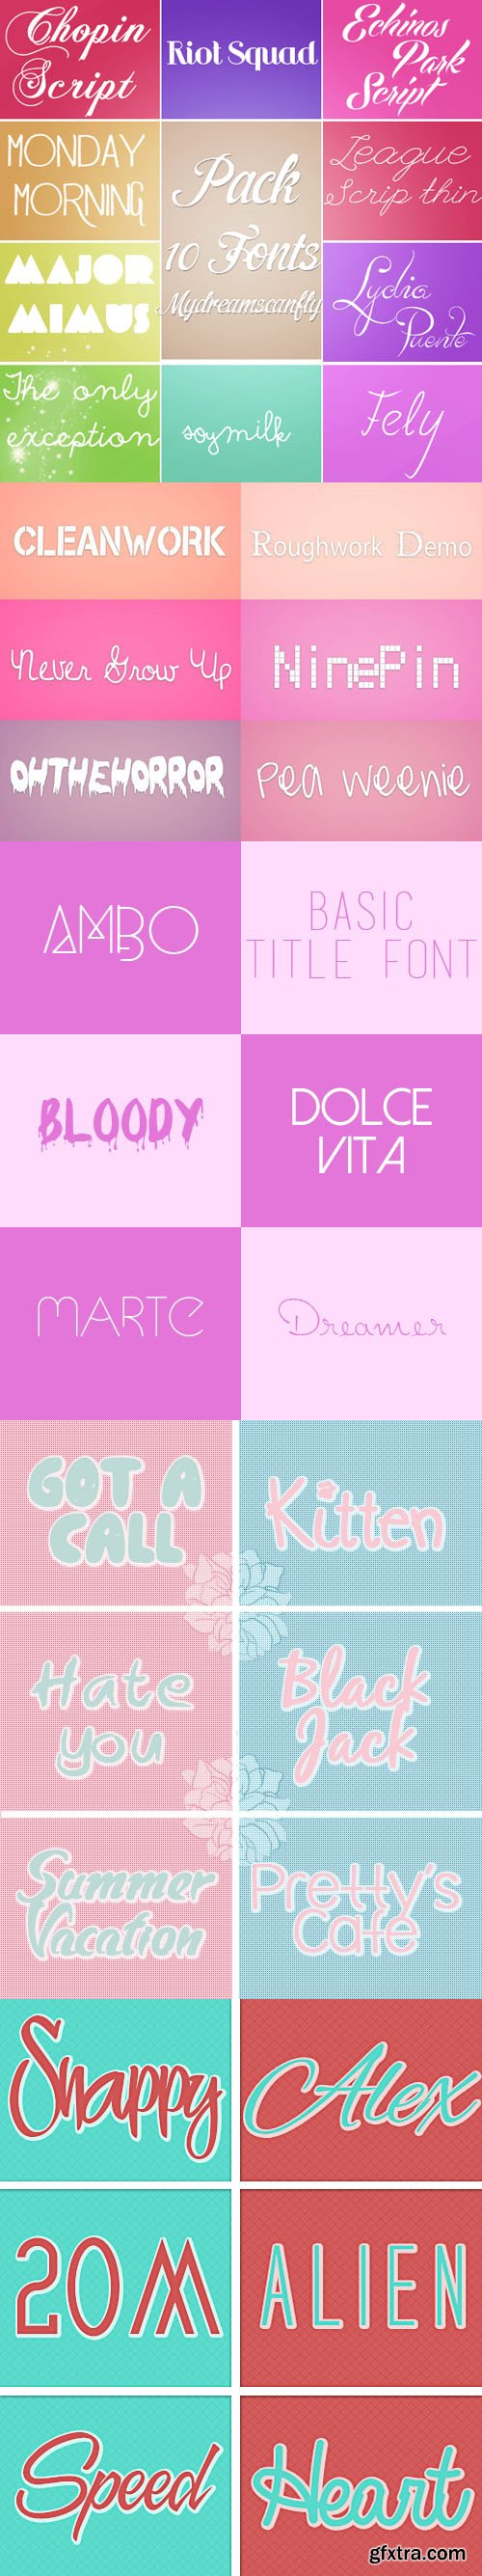 116 Awesome Fonts Collection